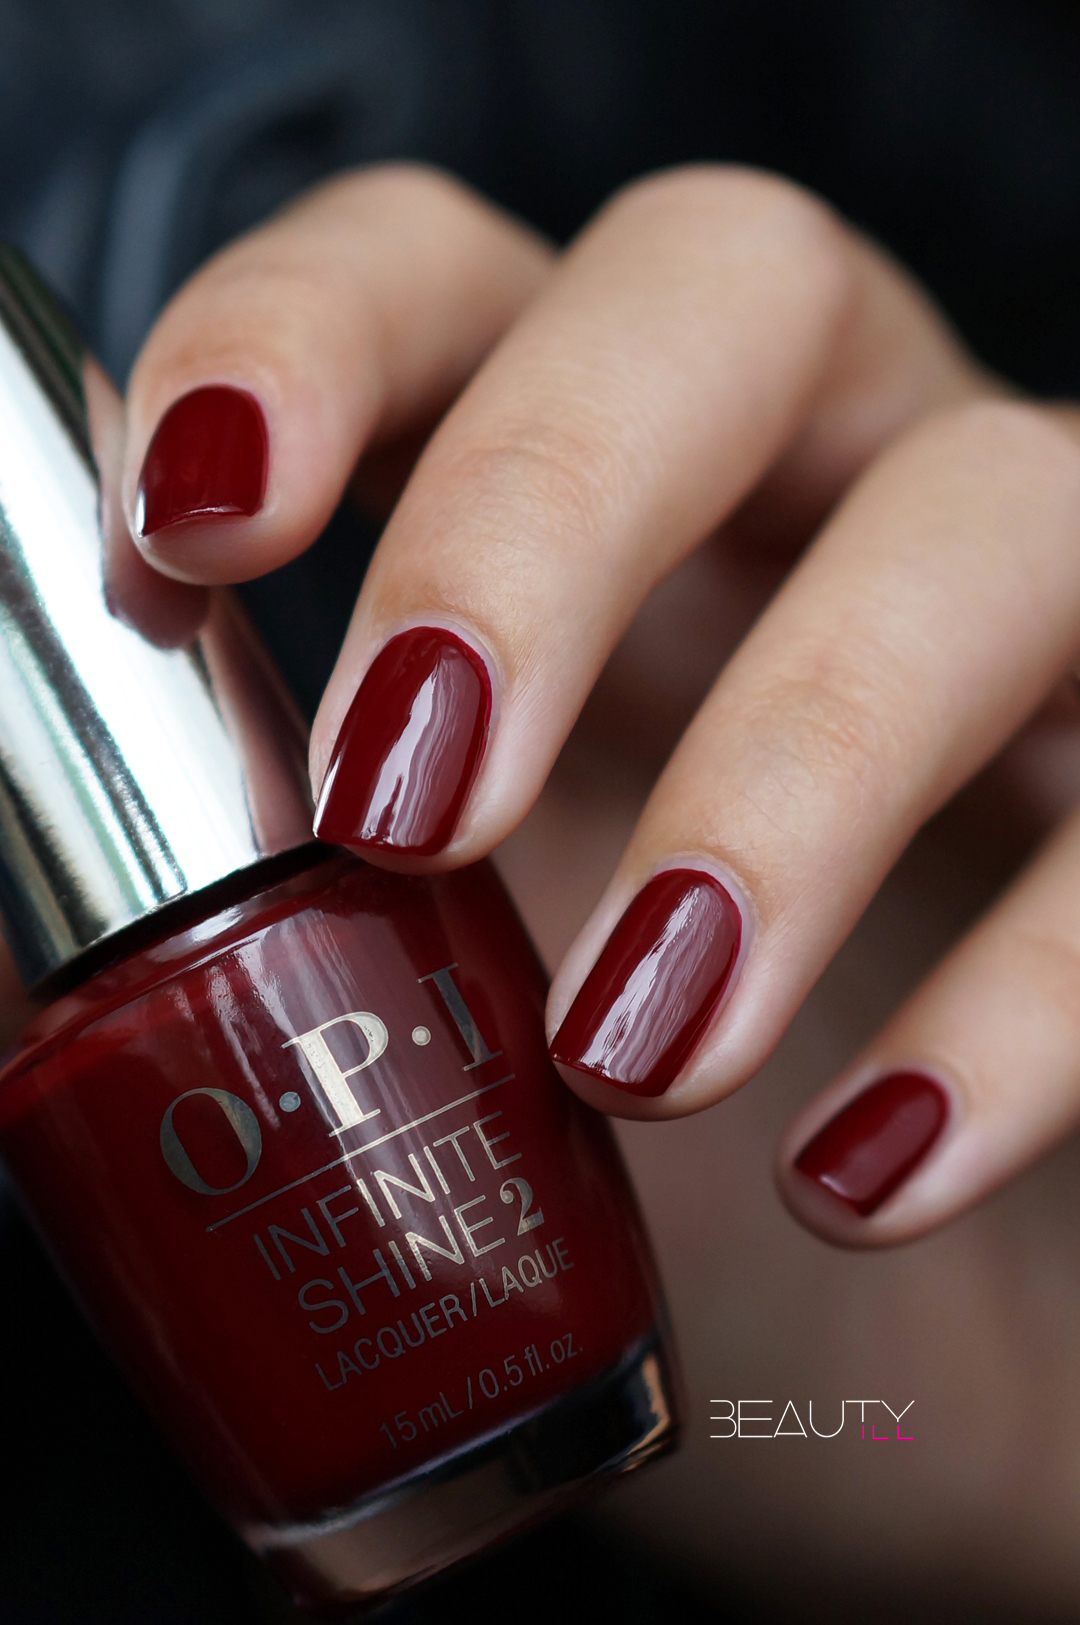 OPI Infinite Shine Raisin' the Bar